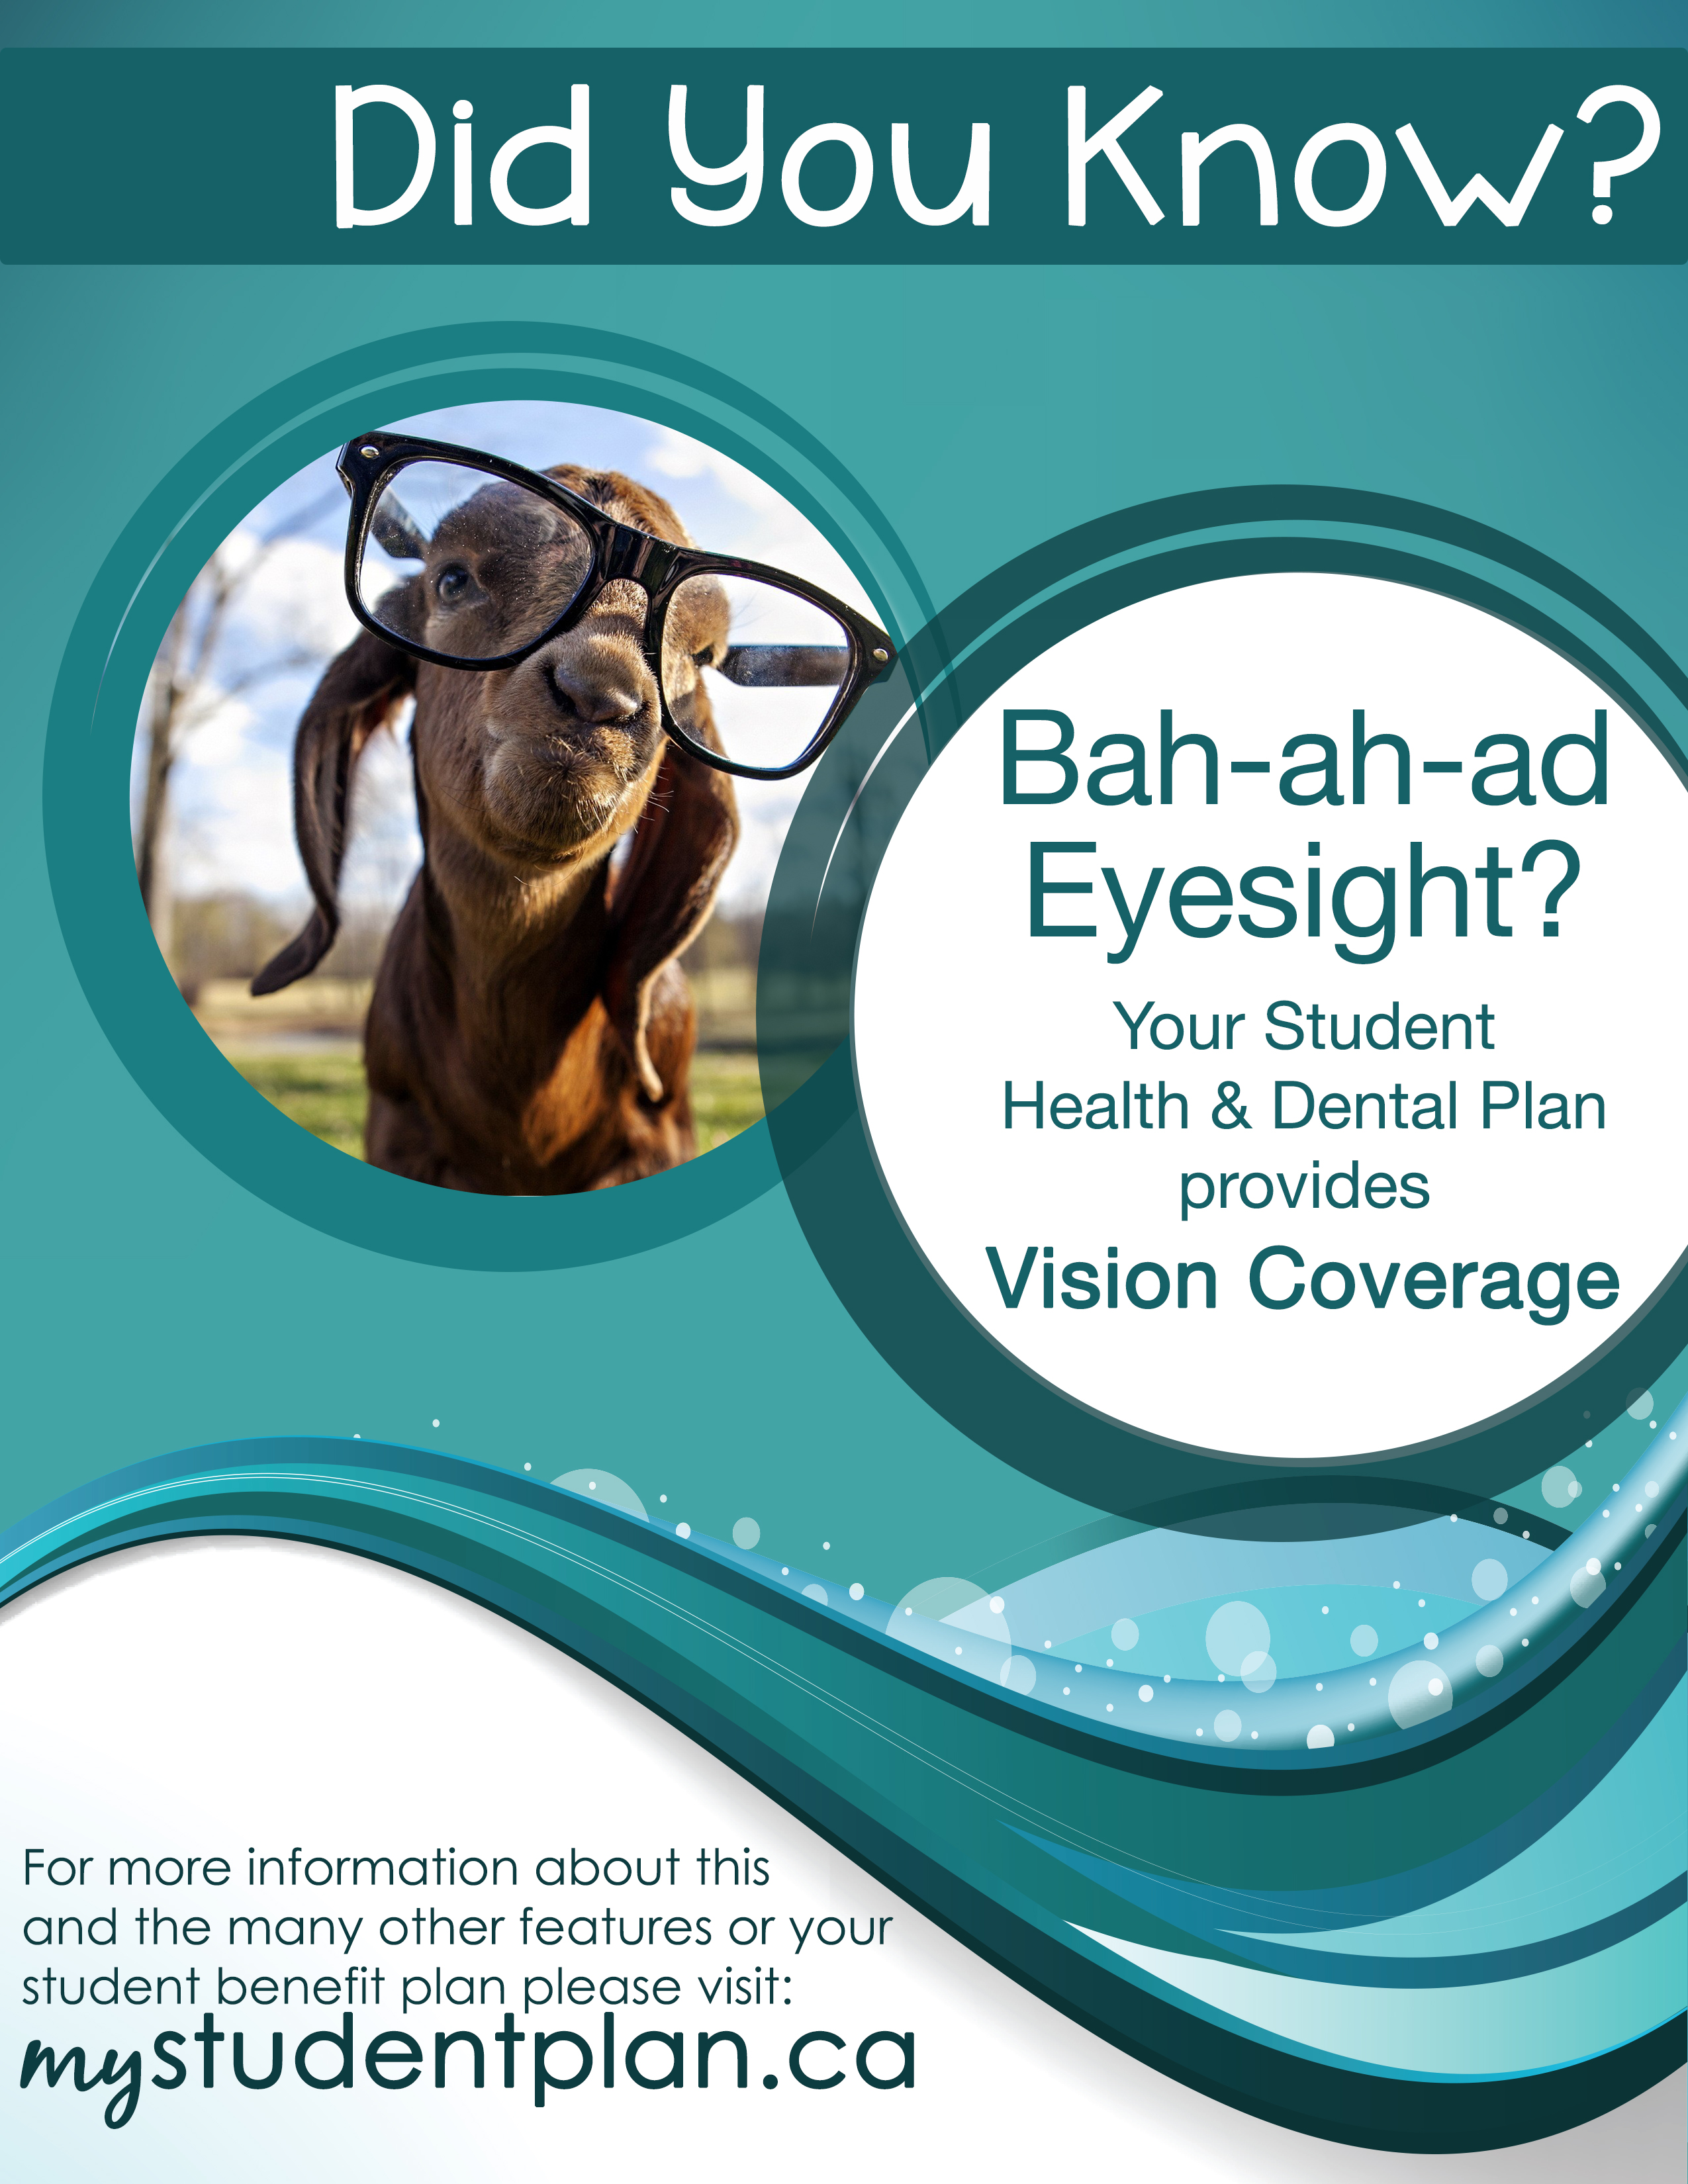 Did you know? Bah-ah-ad eyesight? (picture of a sheep) Your student health and dental plan provides vision coverage